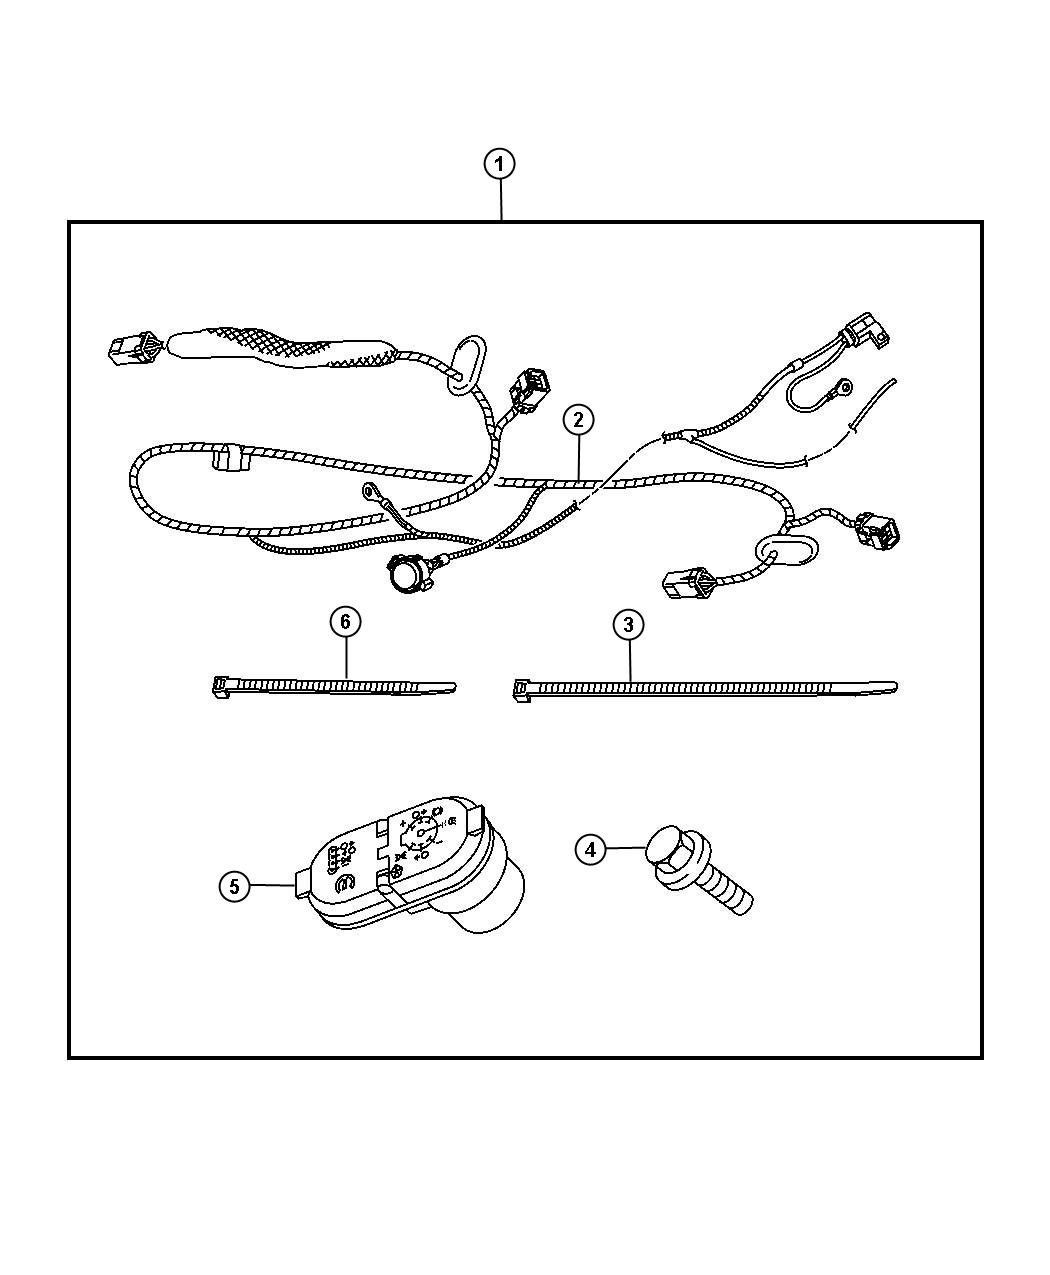 7 Way Trailer Wiring Kit, 7, Free Engine Image For User